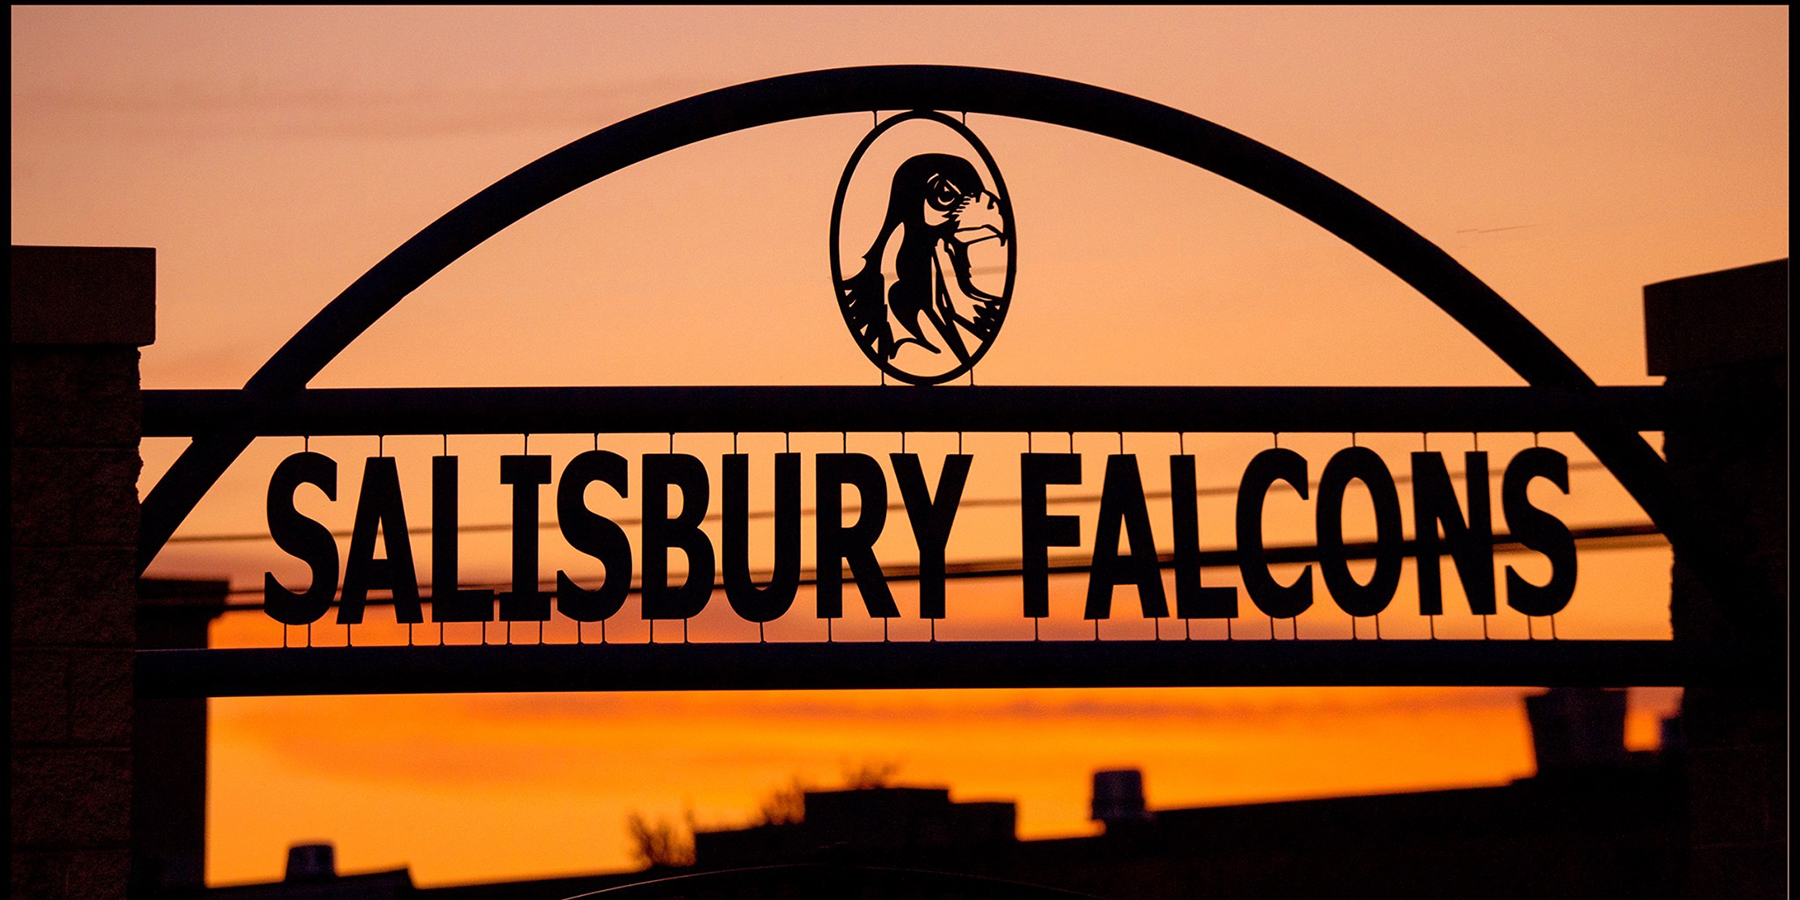 Salisbury Falcons at Sunset